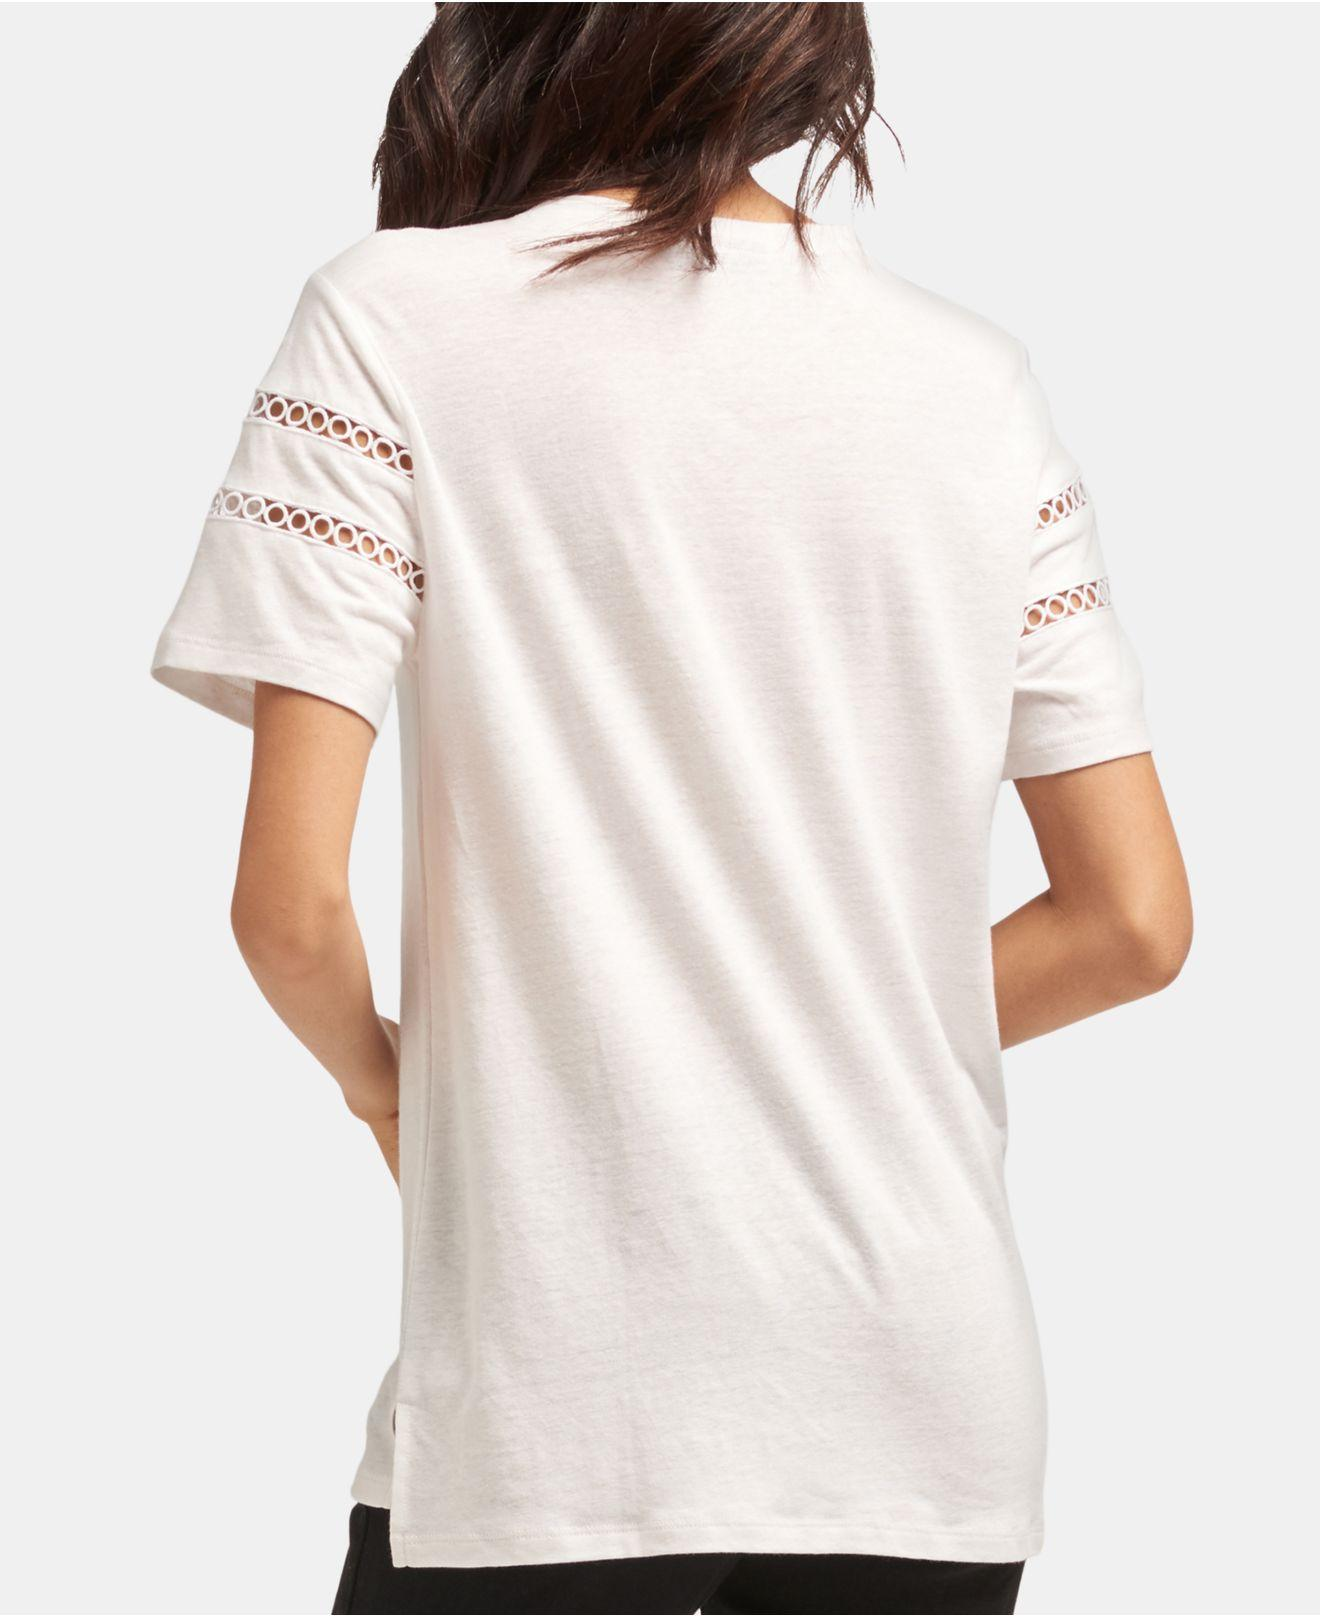 f3232cd25dc Lyst - DKNY Short-sleeve Crewneck Cutout-detail Top in White